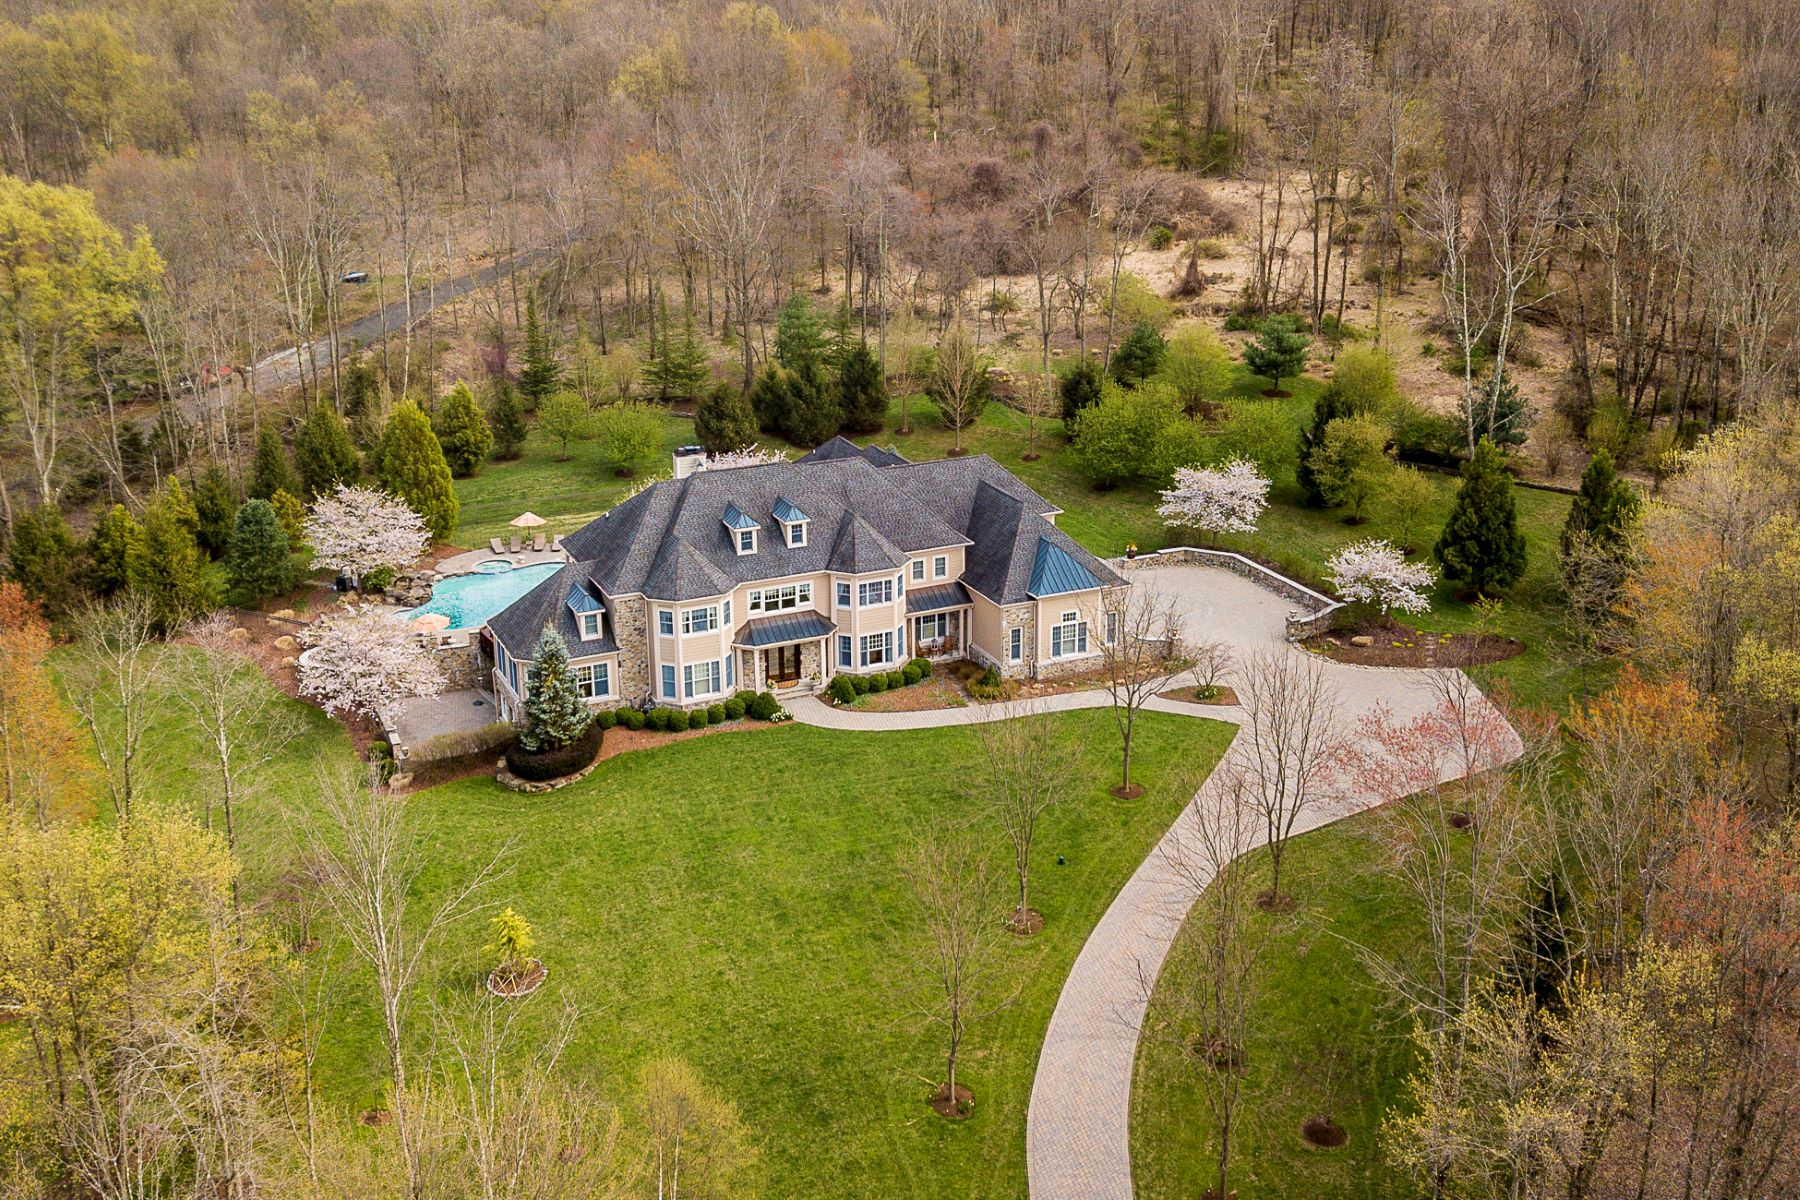 Property for Sale at An Oasis Of Luxury Custom Built to the Highest Standards 239 Zion Road, Hillsborough, New Jersey 08844 United States